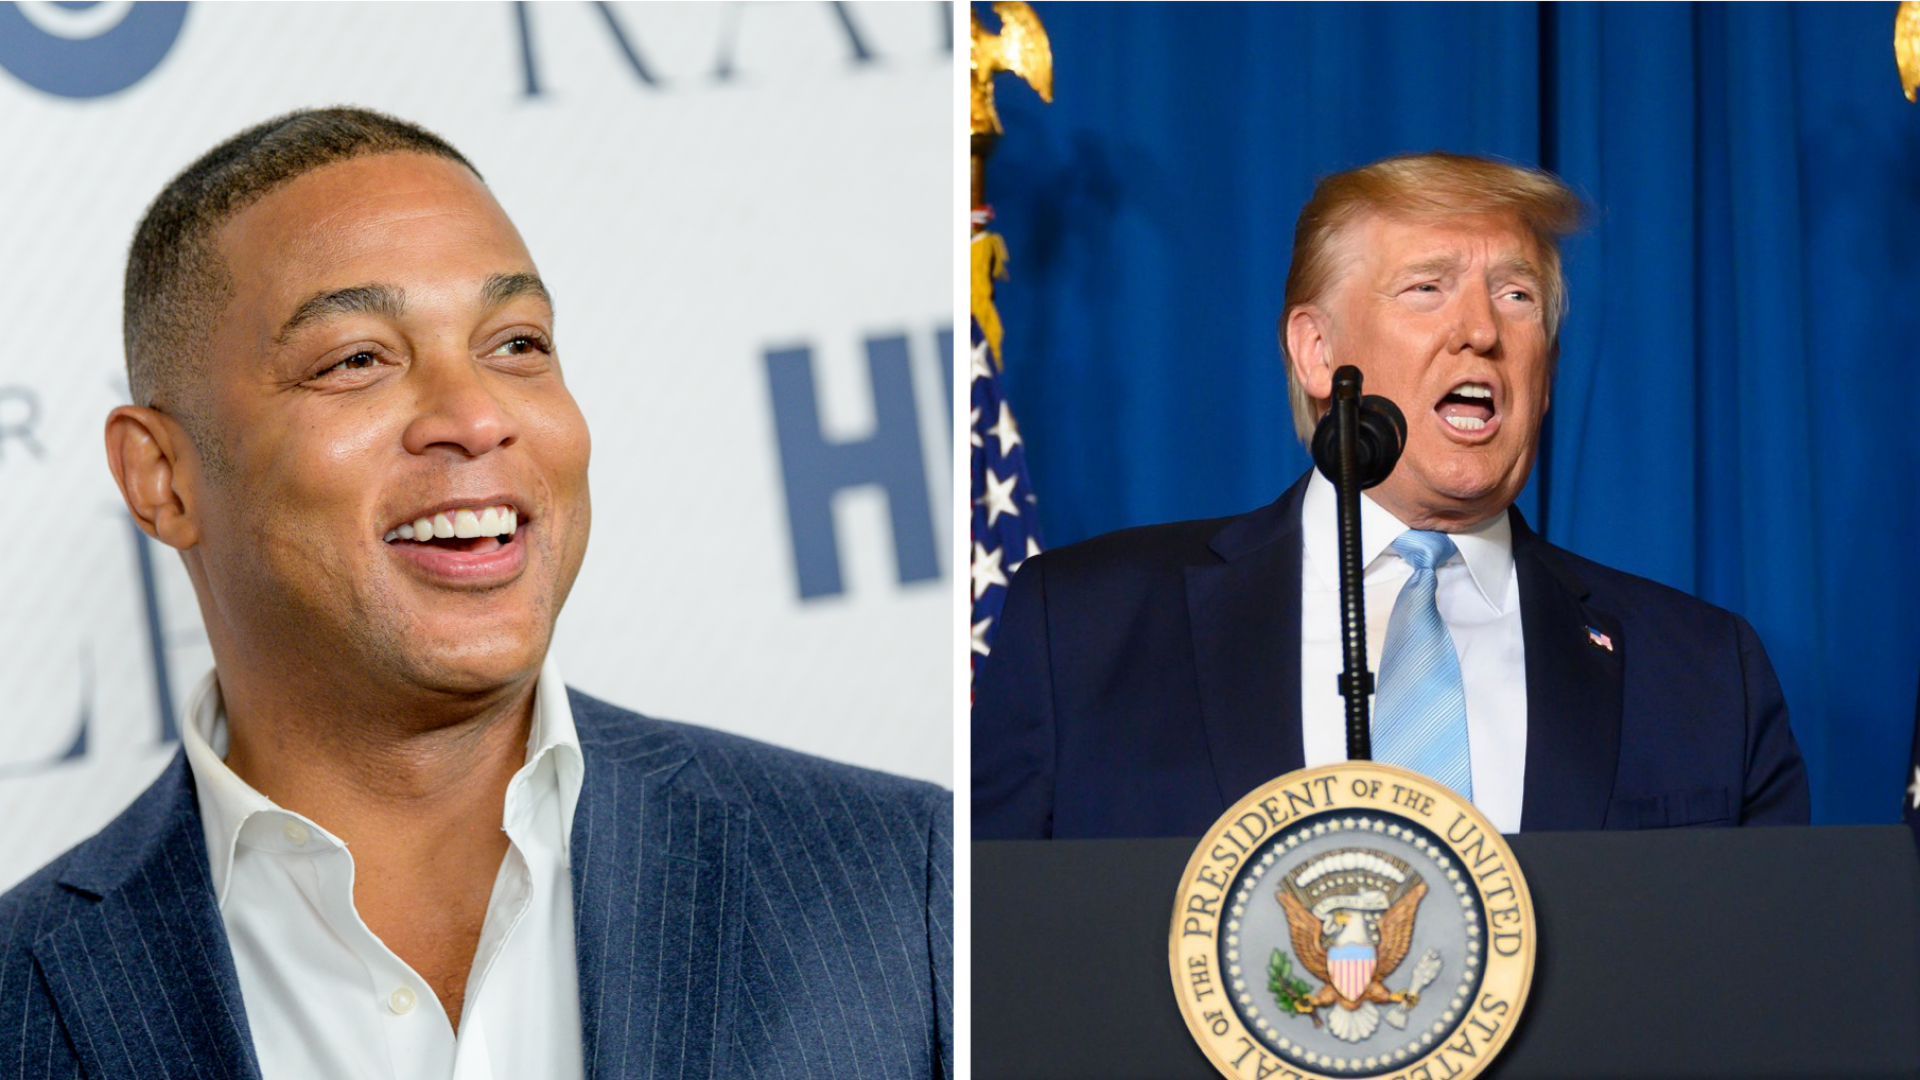 Don Lemon Questions Trump's Unhealthy Obsession With Barack Obama In Scathing On-Air Commentary